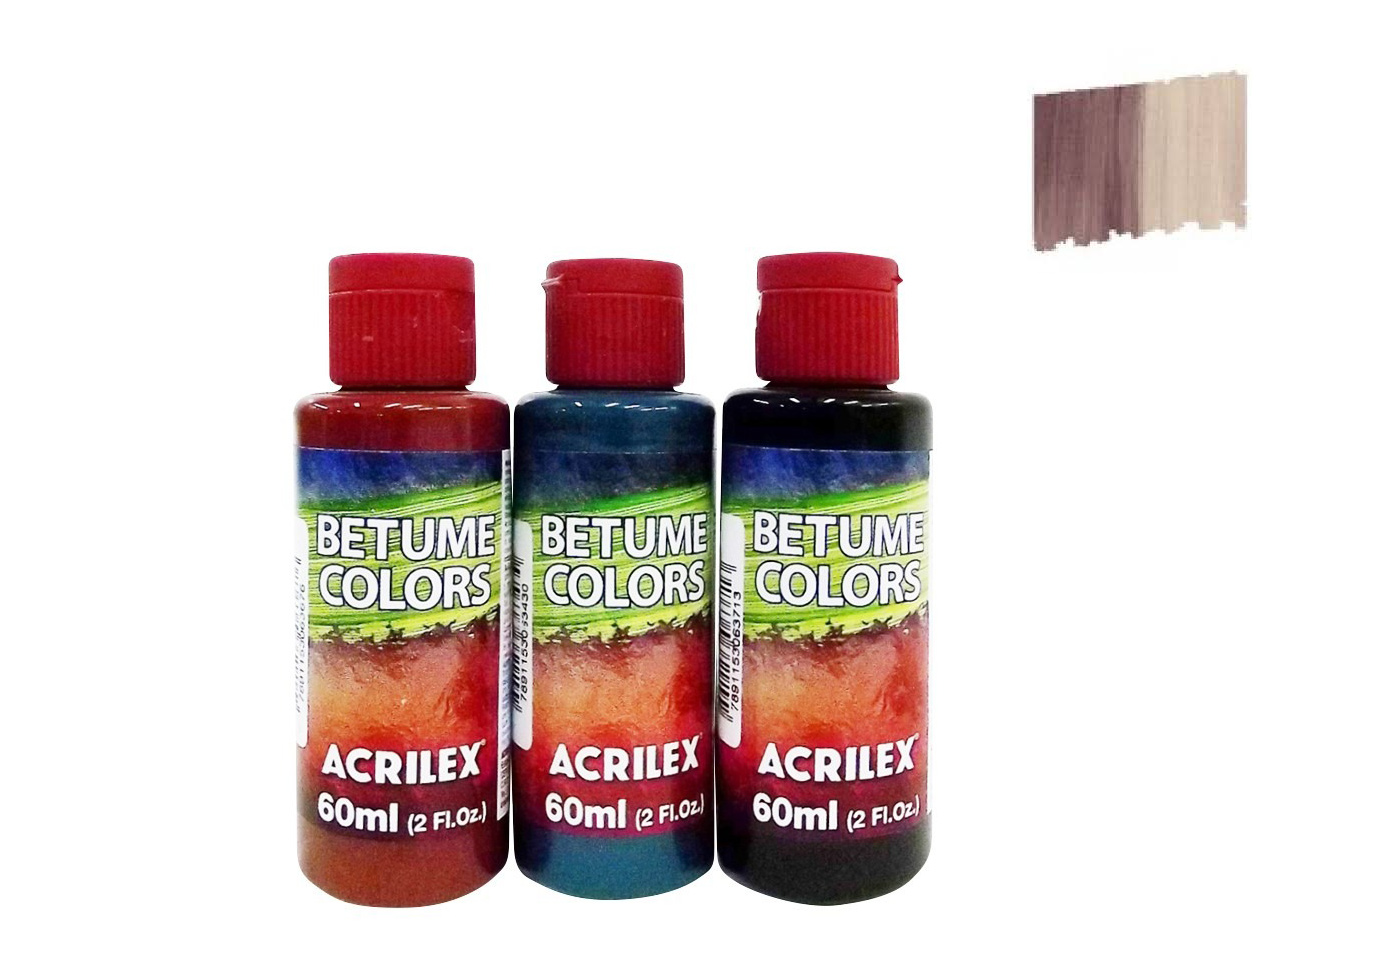 BETUME COLORS 60ML BLACK GRAPE 21660957 ACRILEX